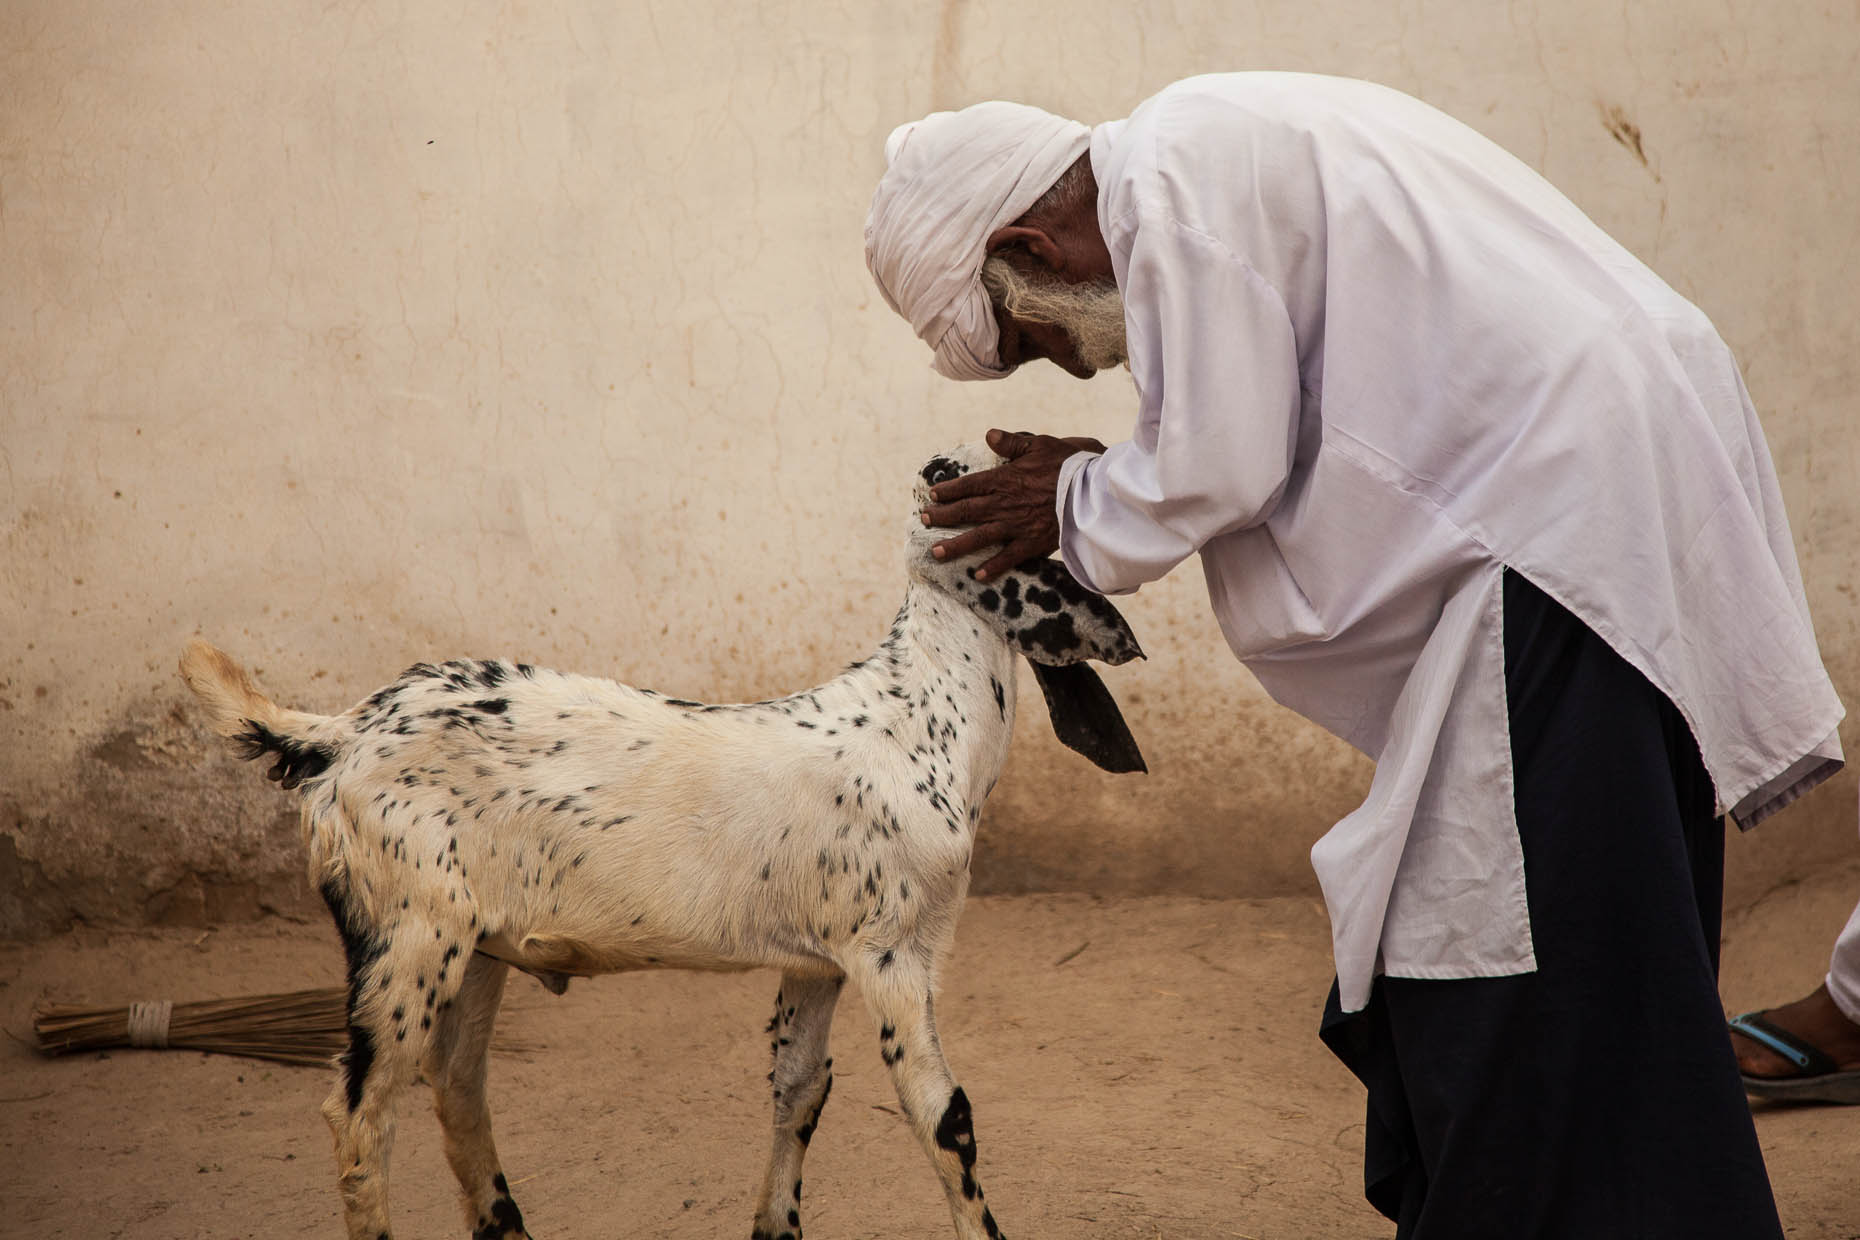 Elderly-man-with-goats-Pakistan